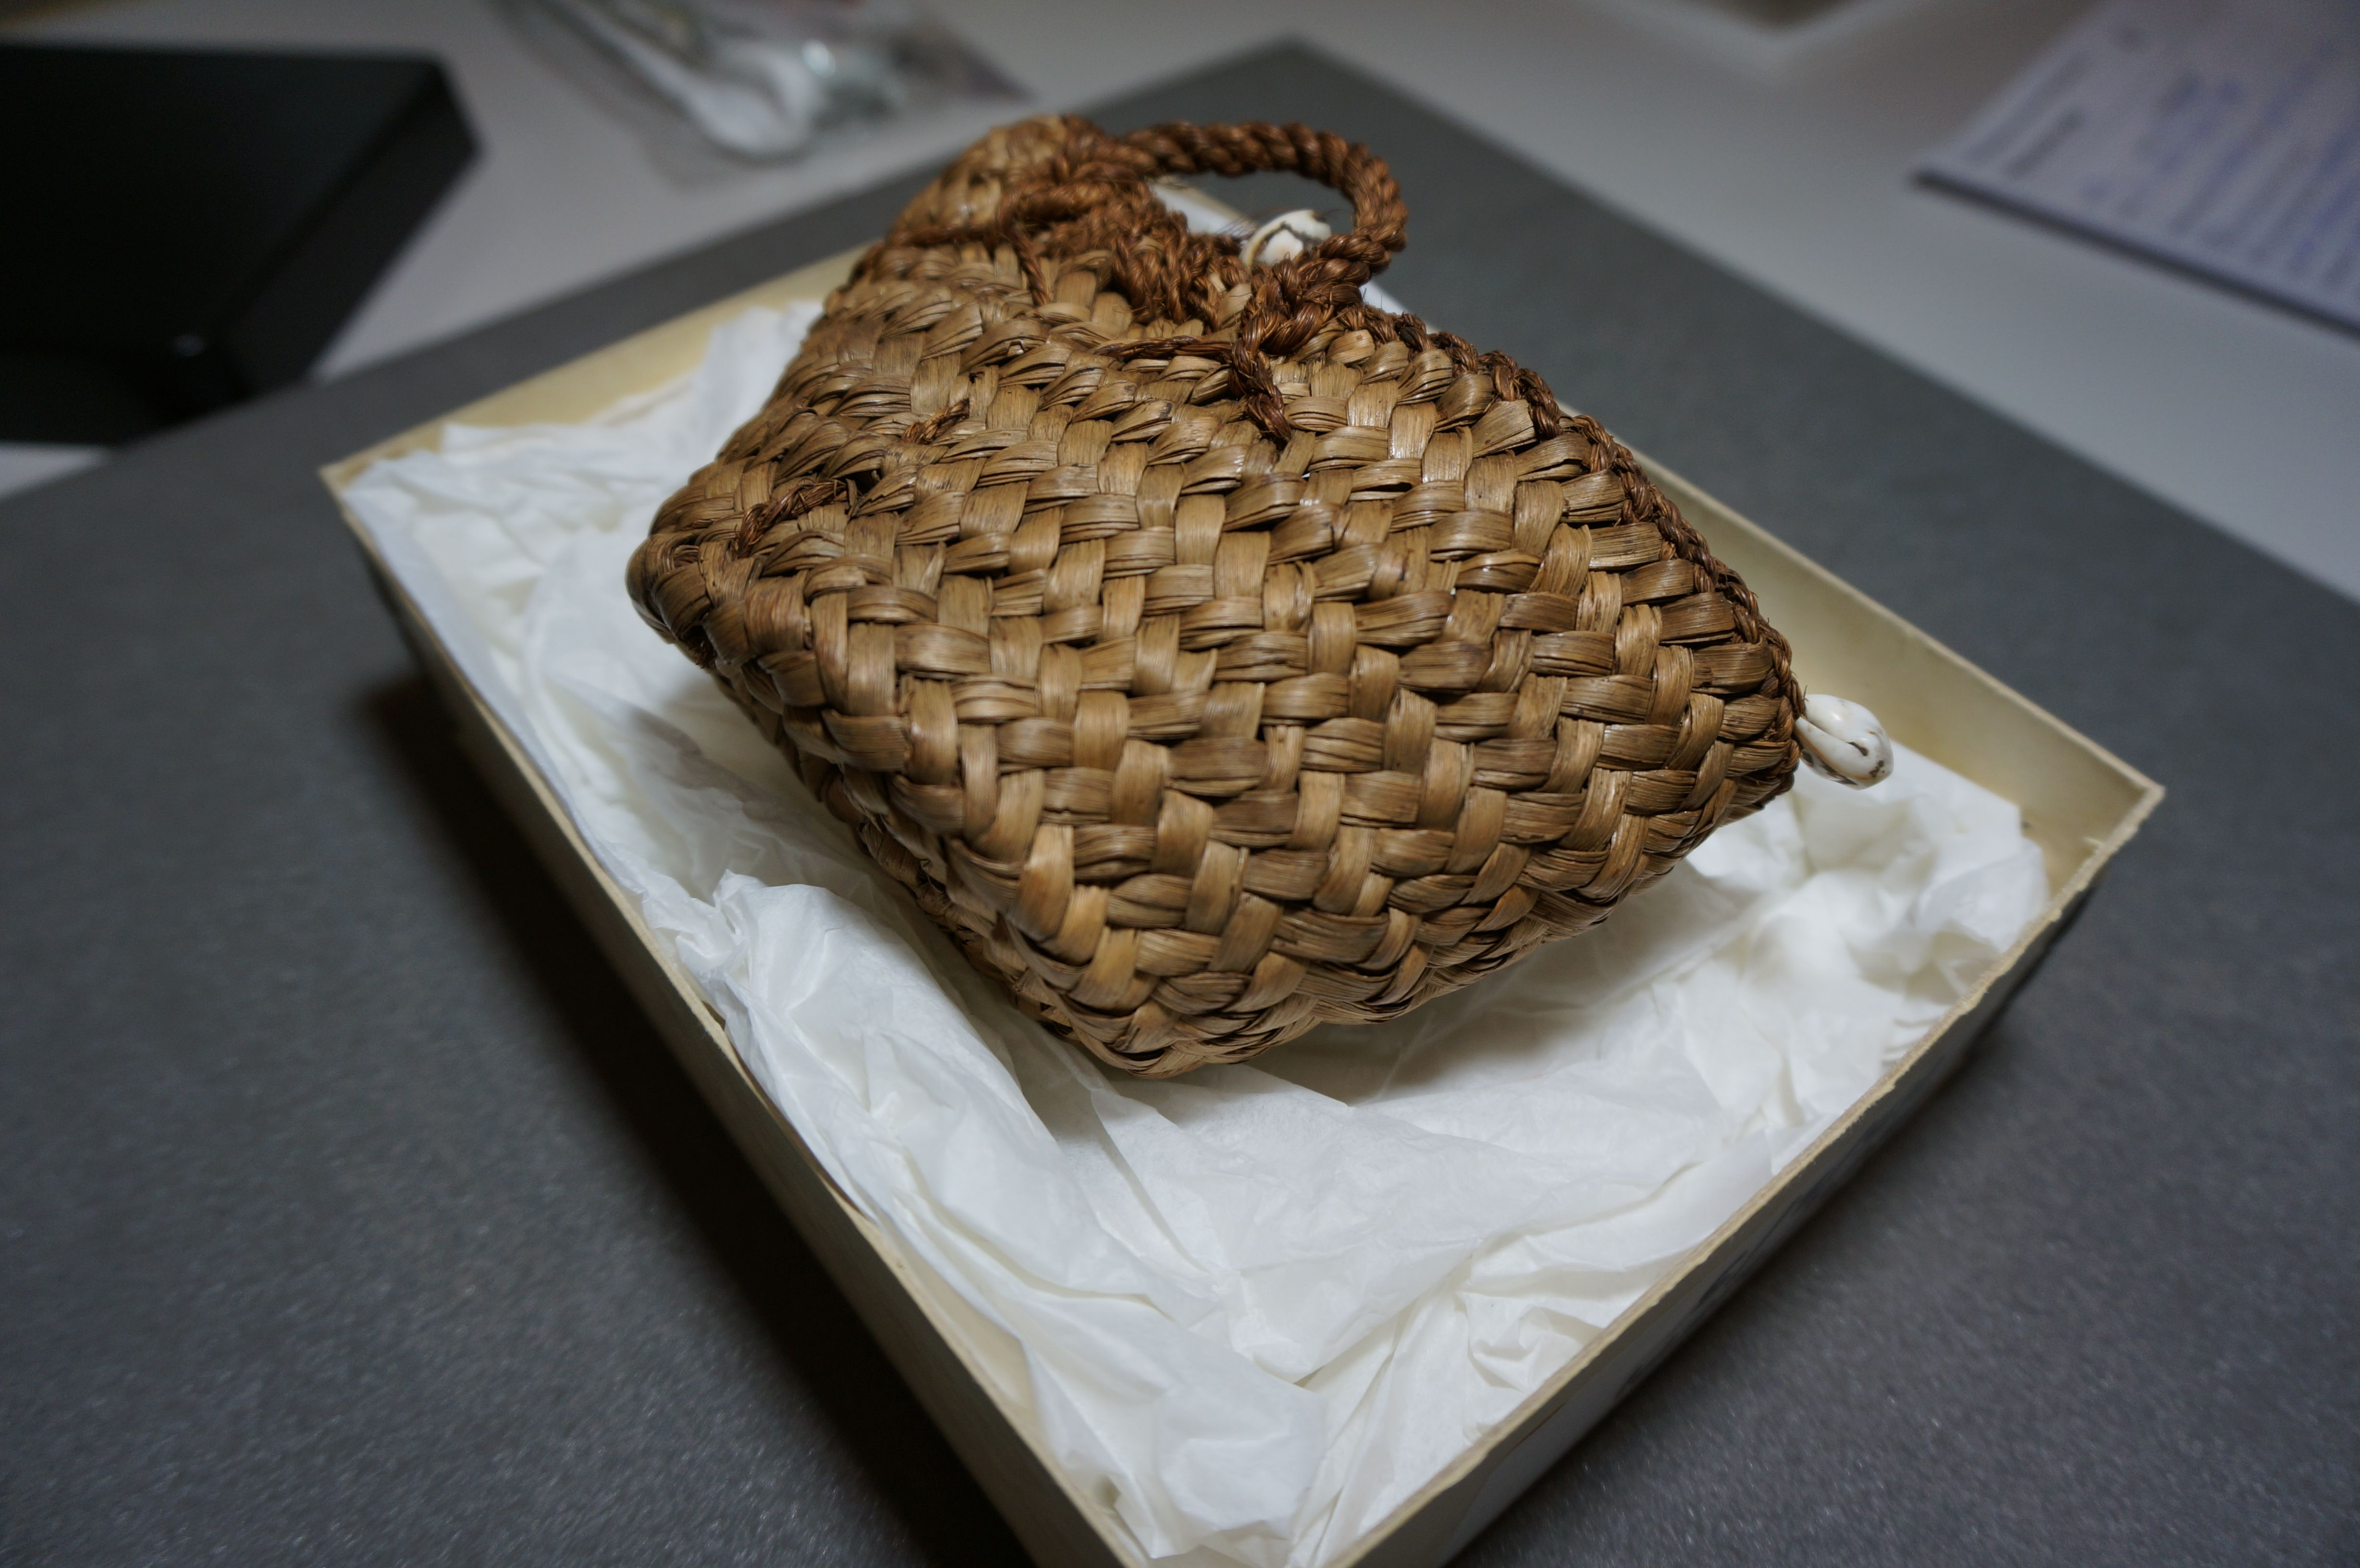 Example of a sewn plait basket from Roman Hawara, Egypt. Petrie Museum, London [UC28048].